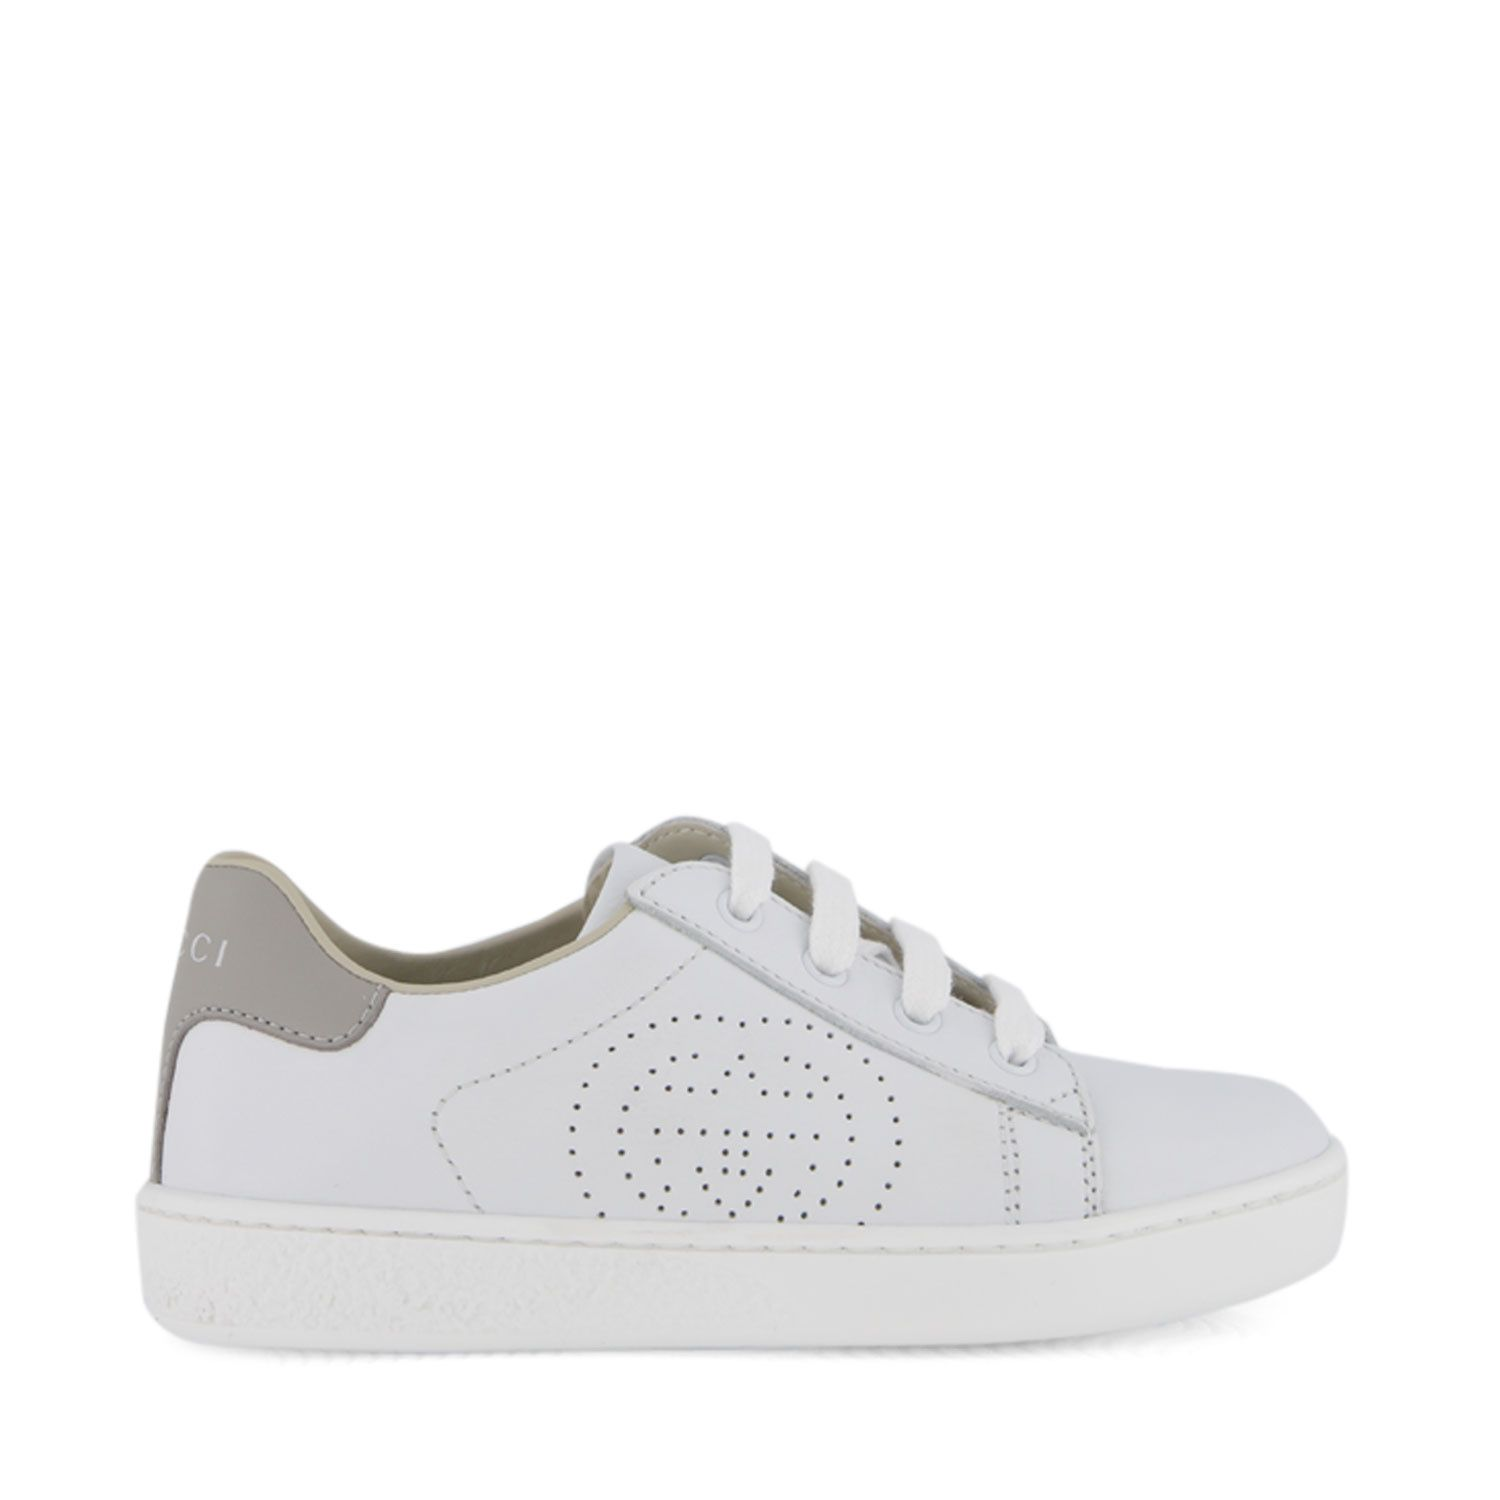 Picture of Gucci 626619 kids sneakers white